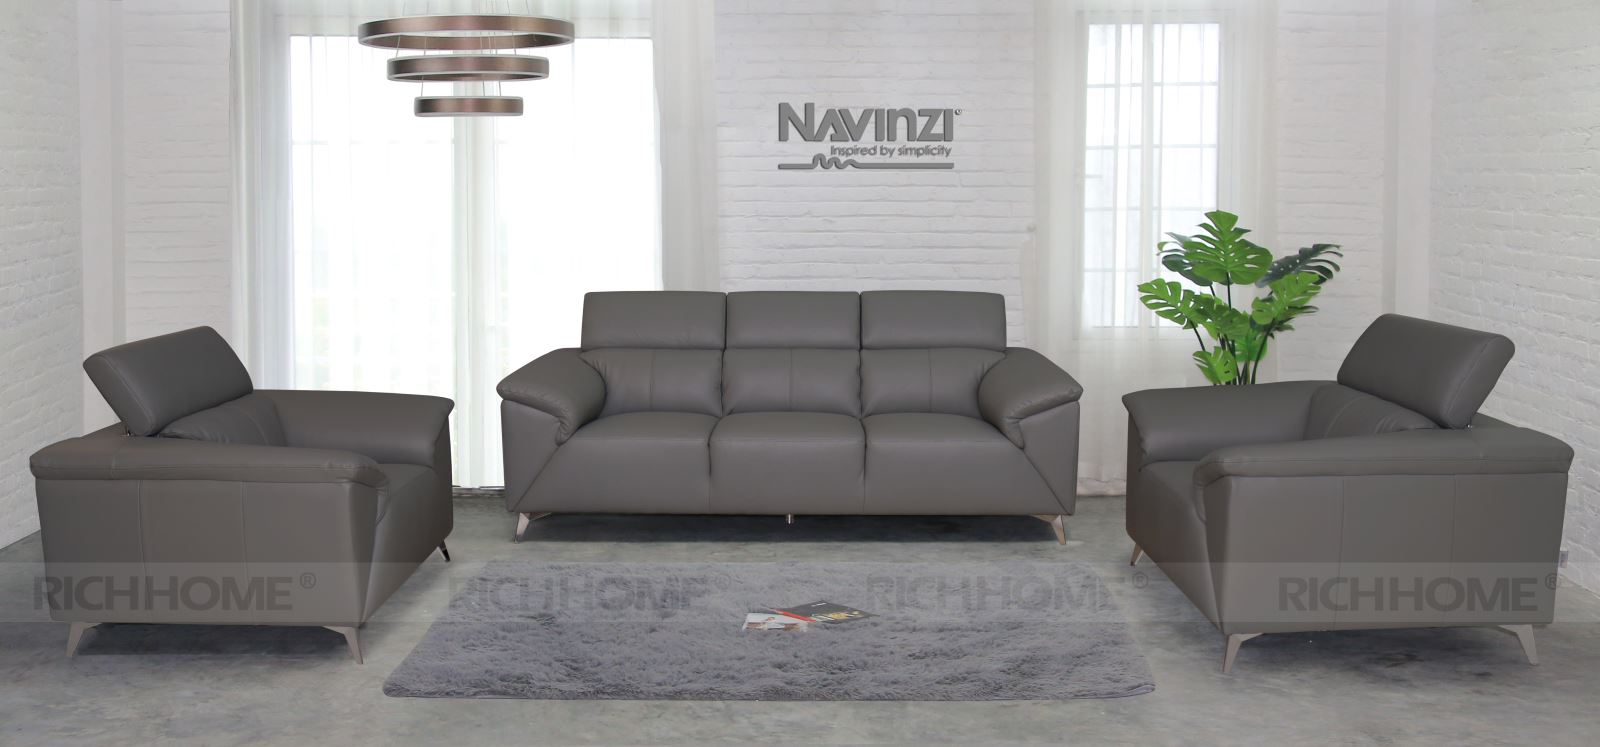 SOFA DA BÒ - NAVINZI MAGIC BĂNG 1+1+3